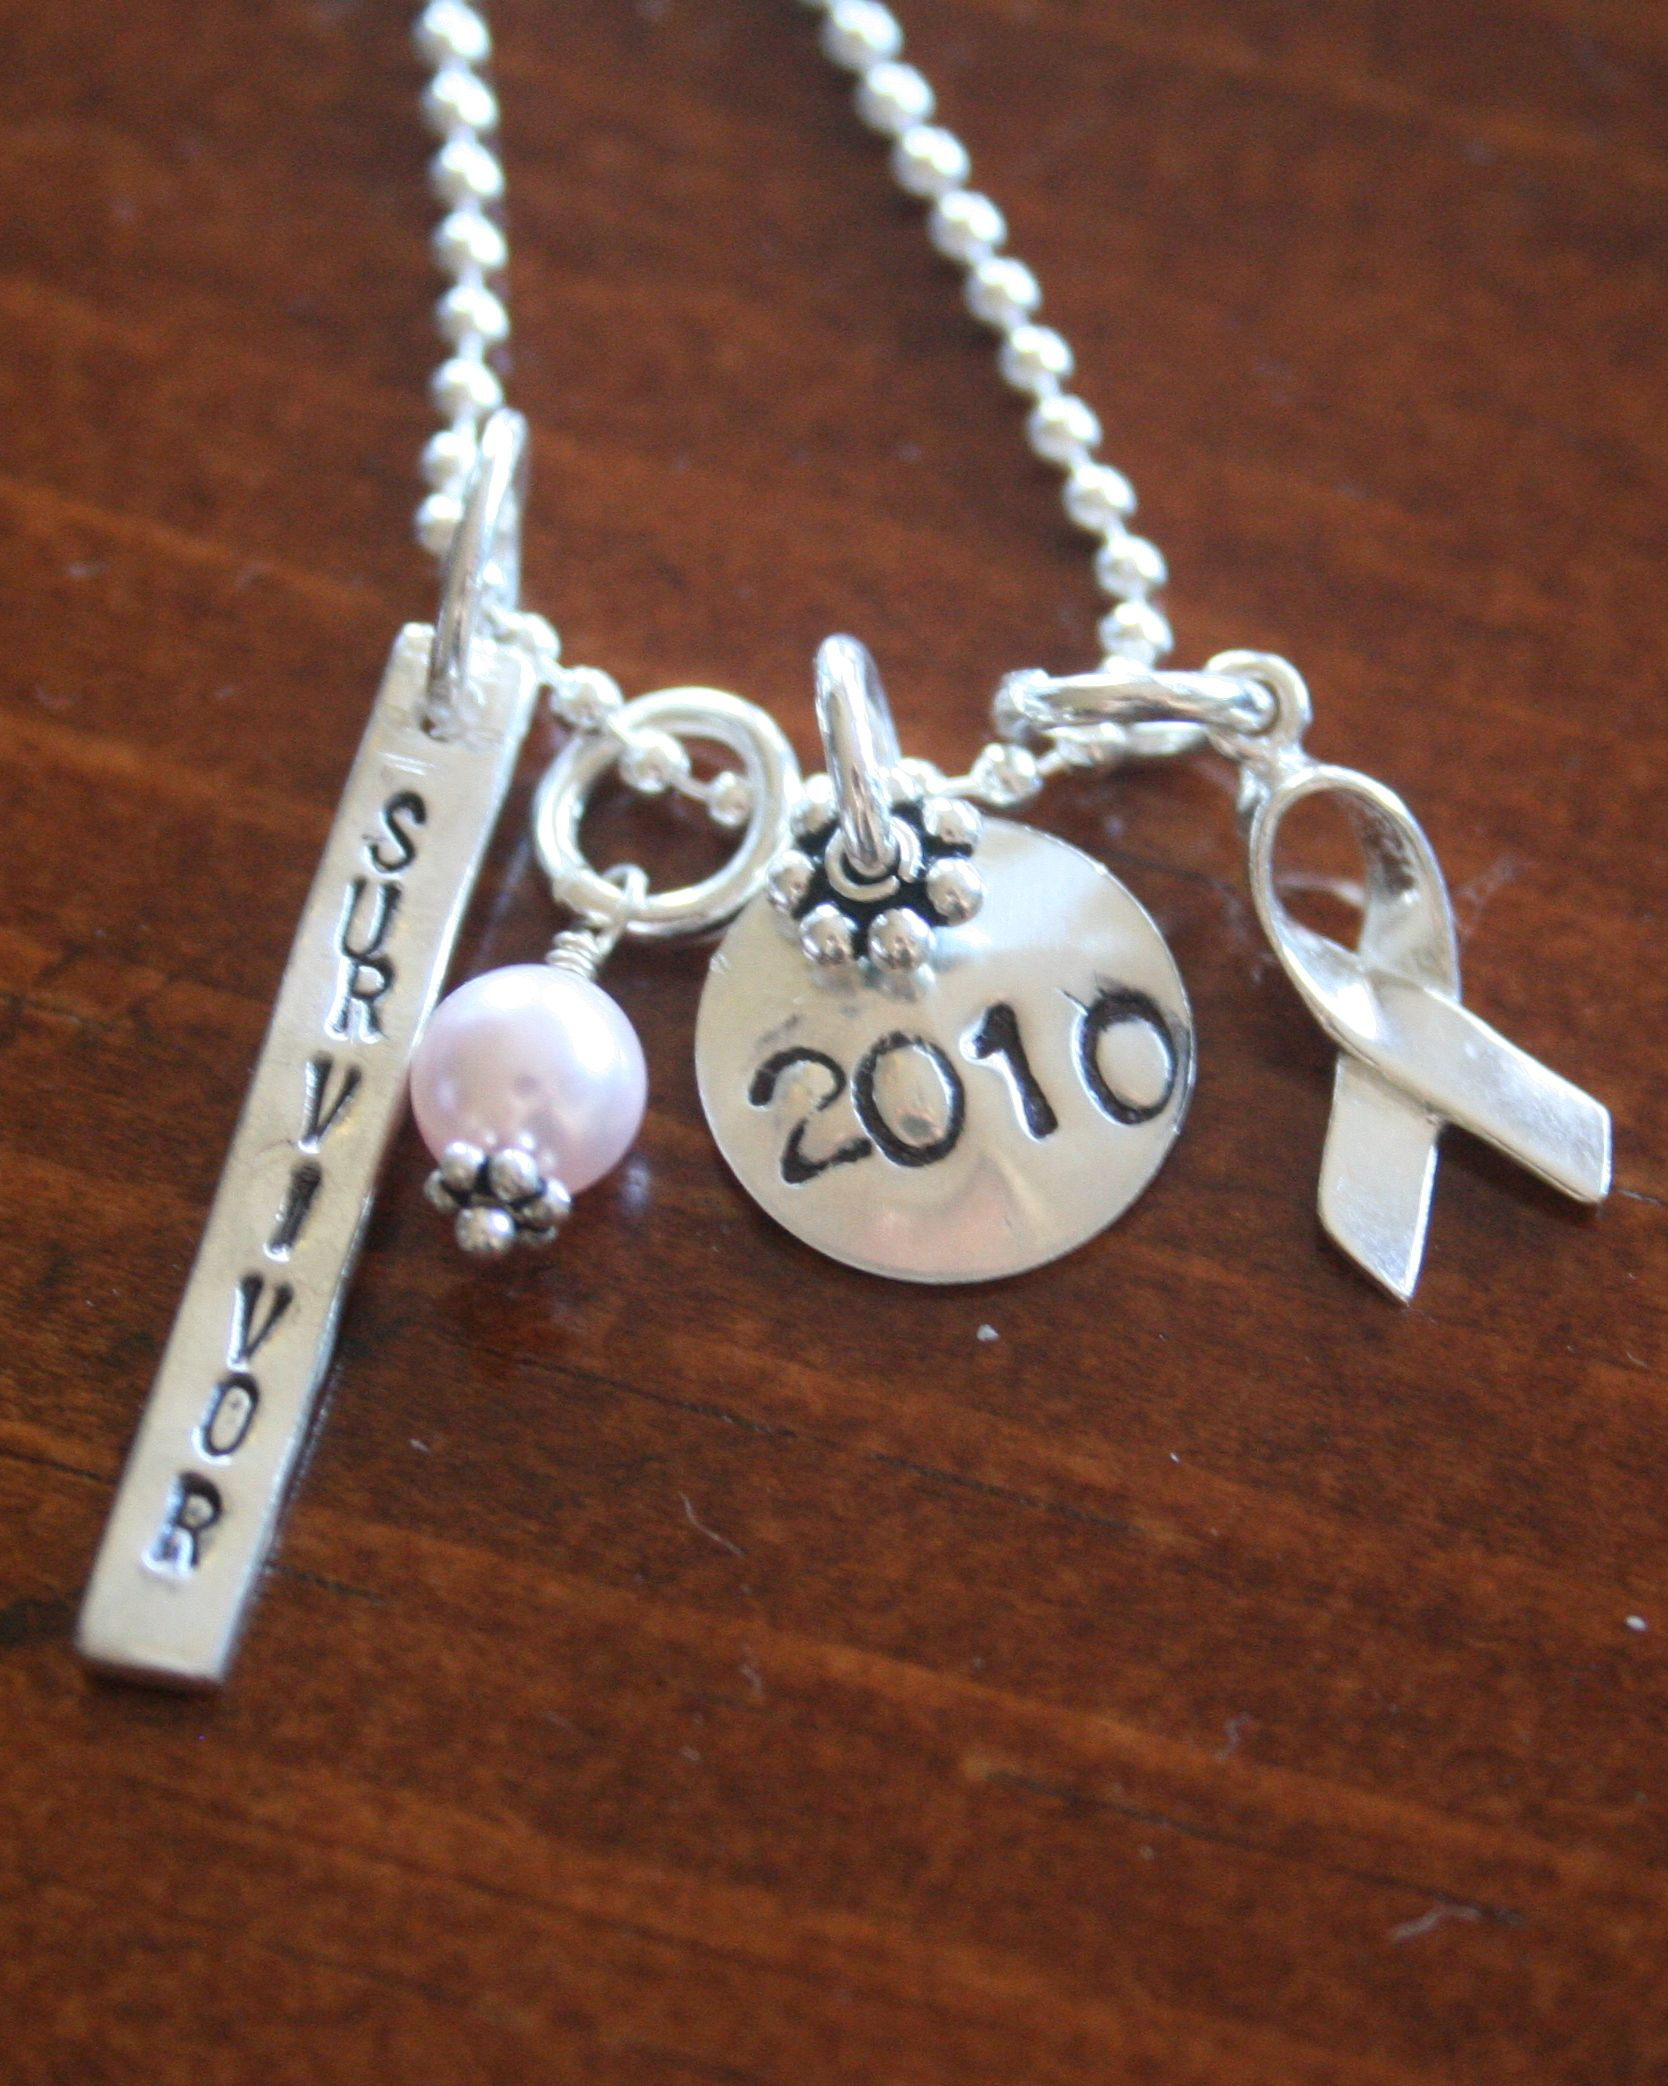 Cancer Survivor Necklace Personalized With